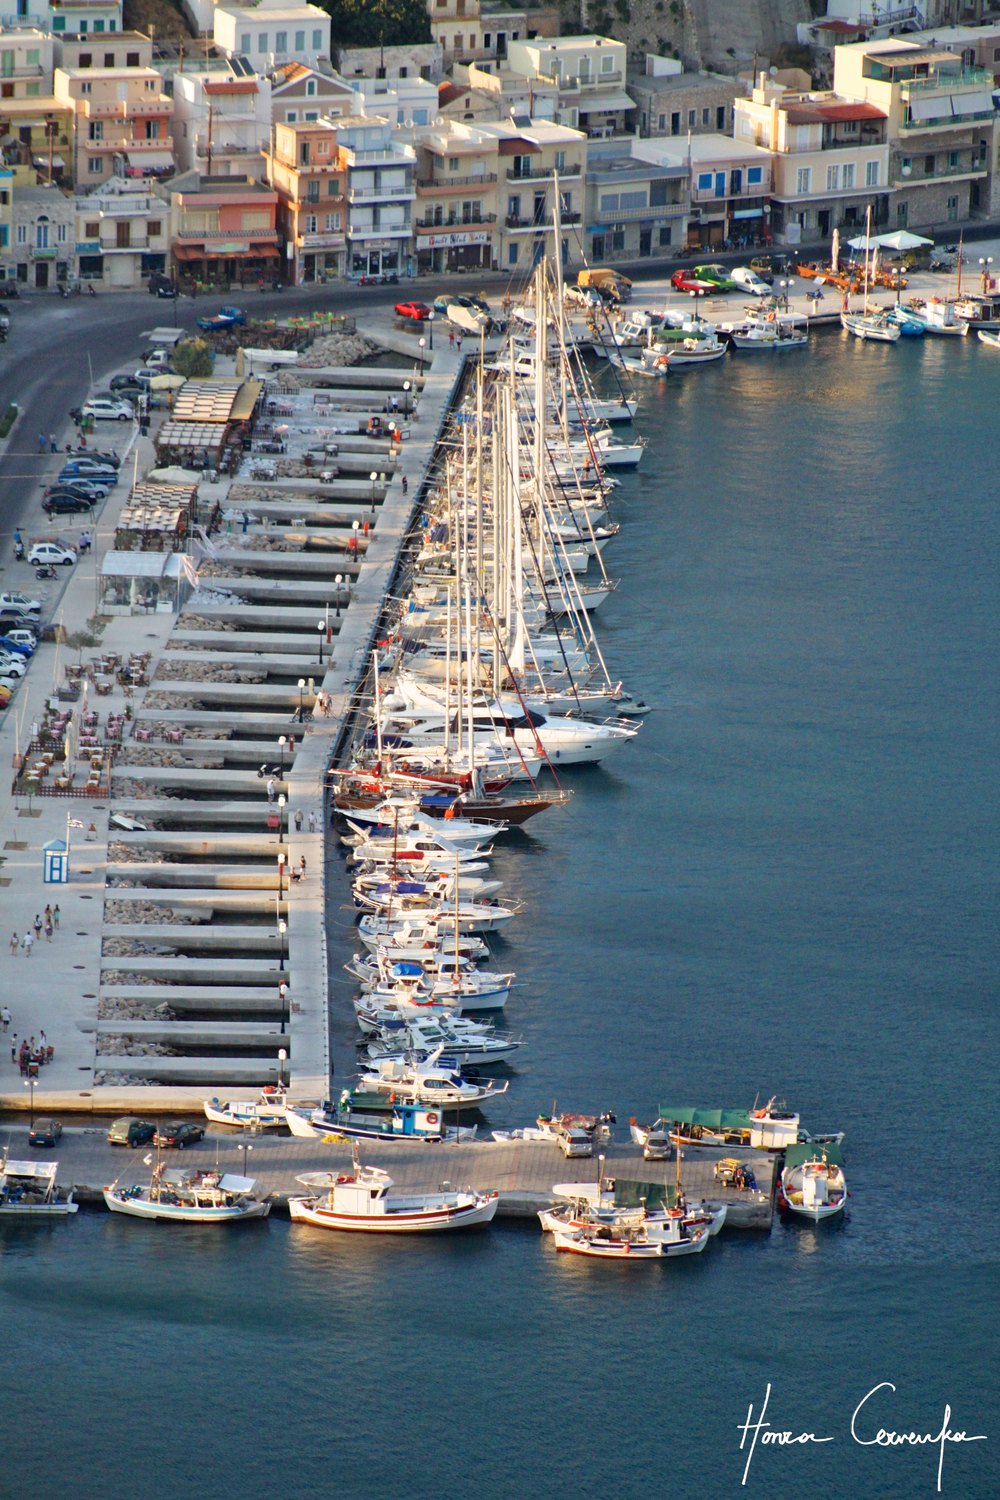 Greece-Kalimnos-Harbour-Honza-Cervenka